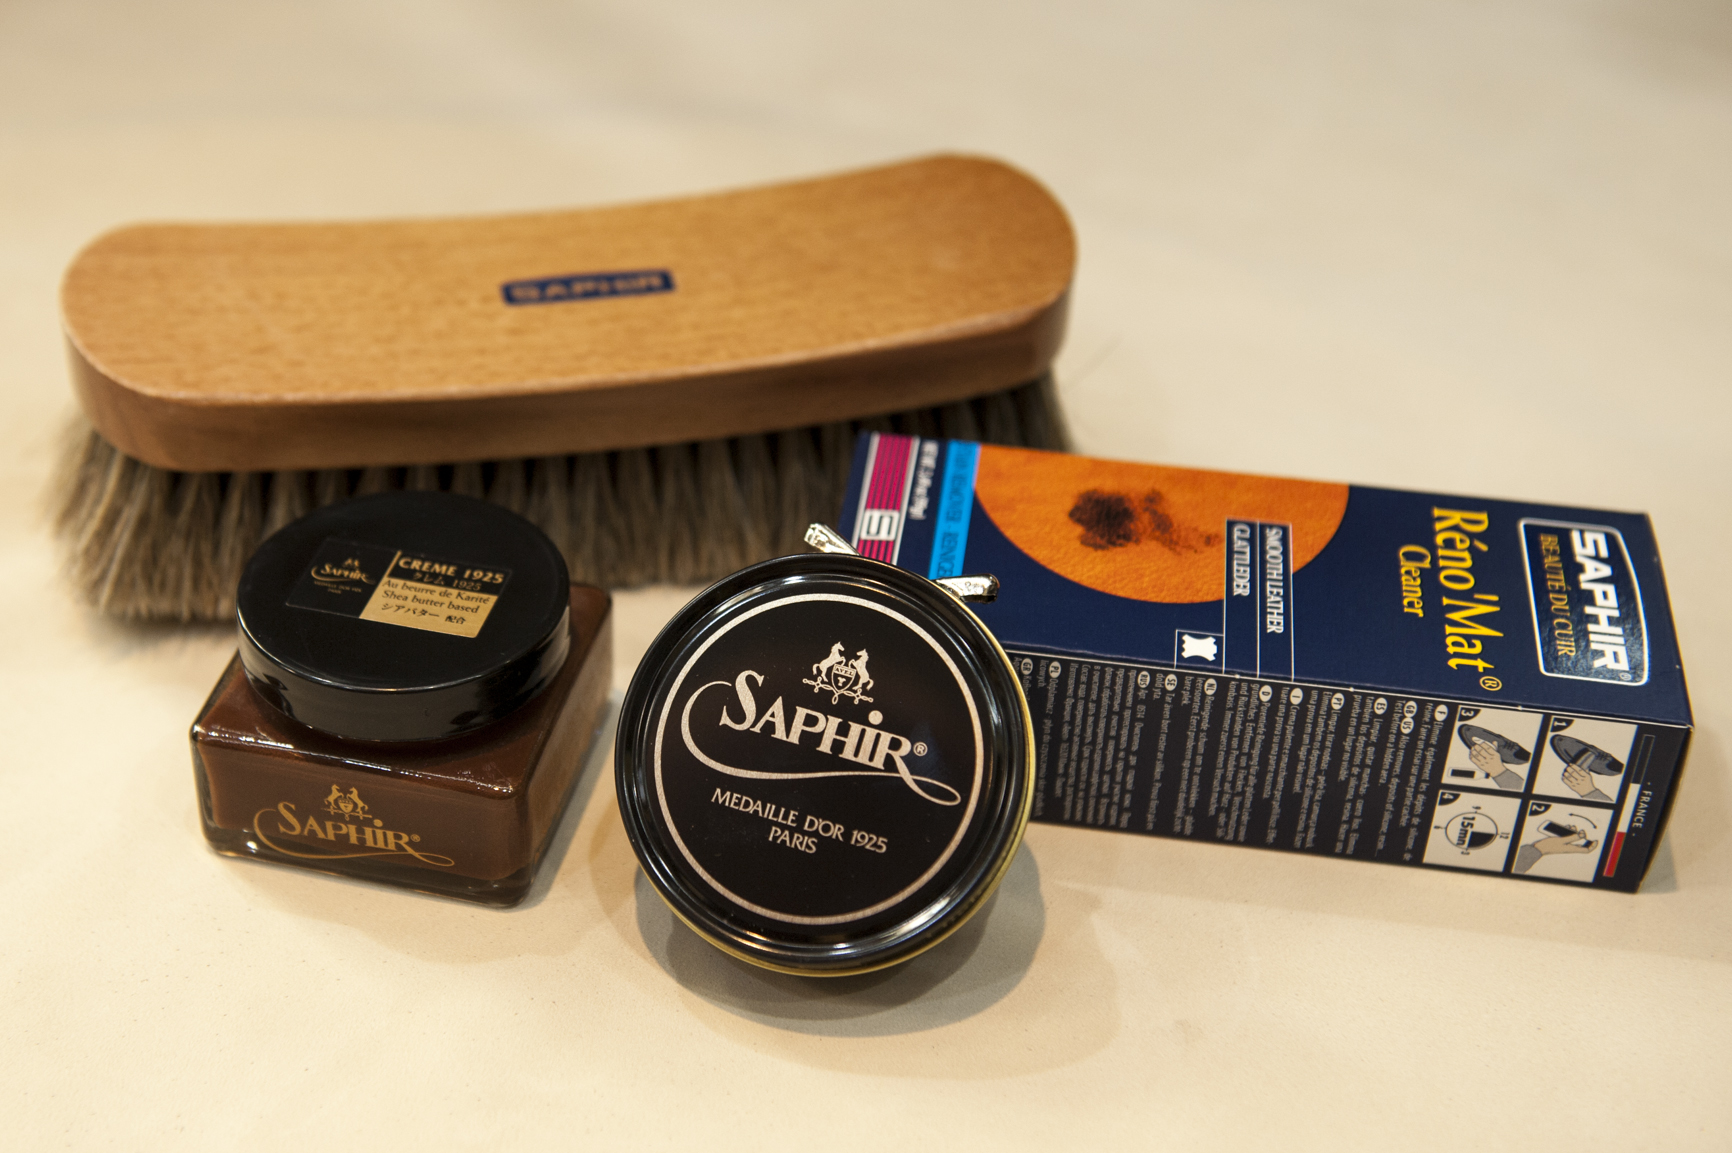 Productos Shaphir